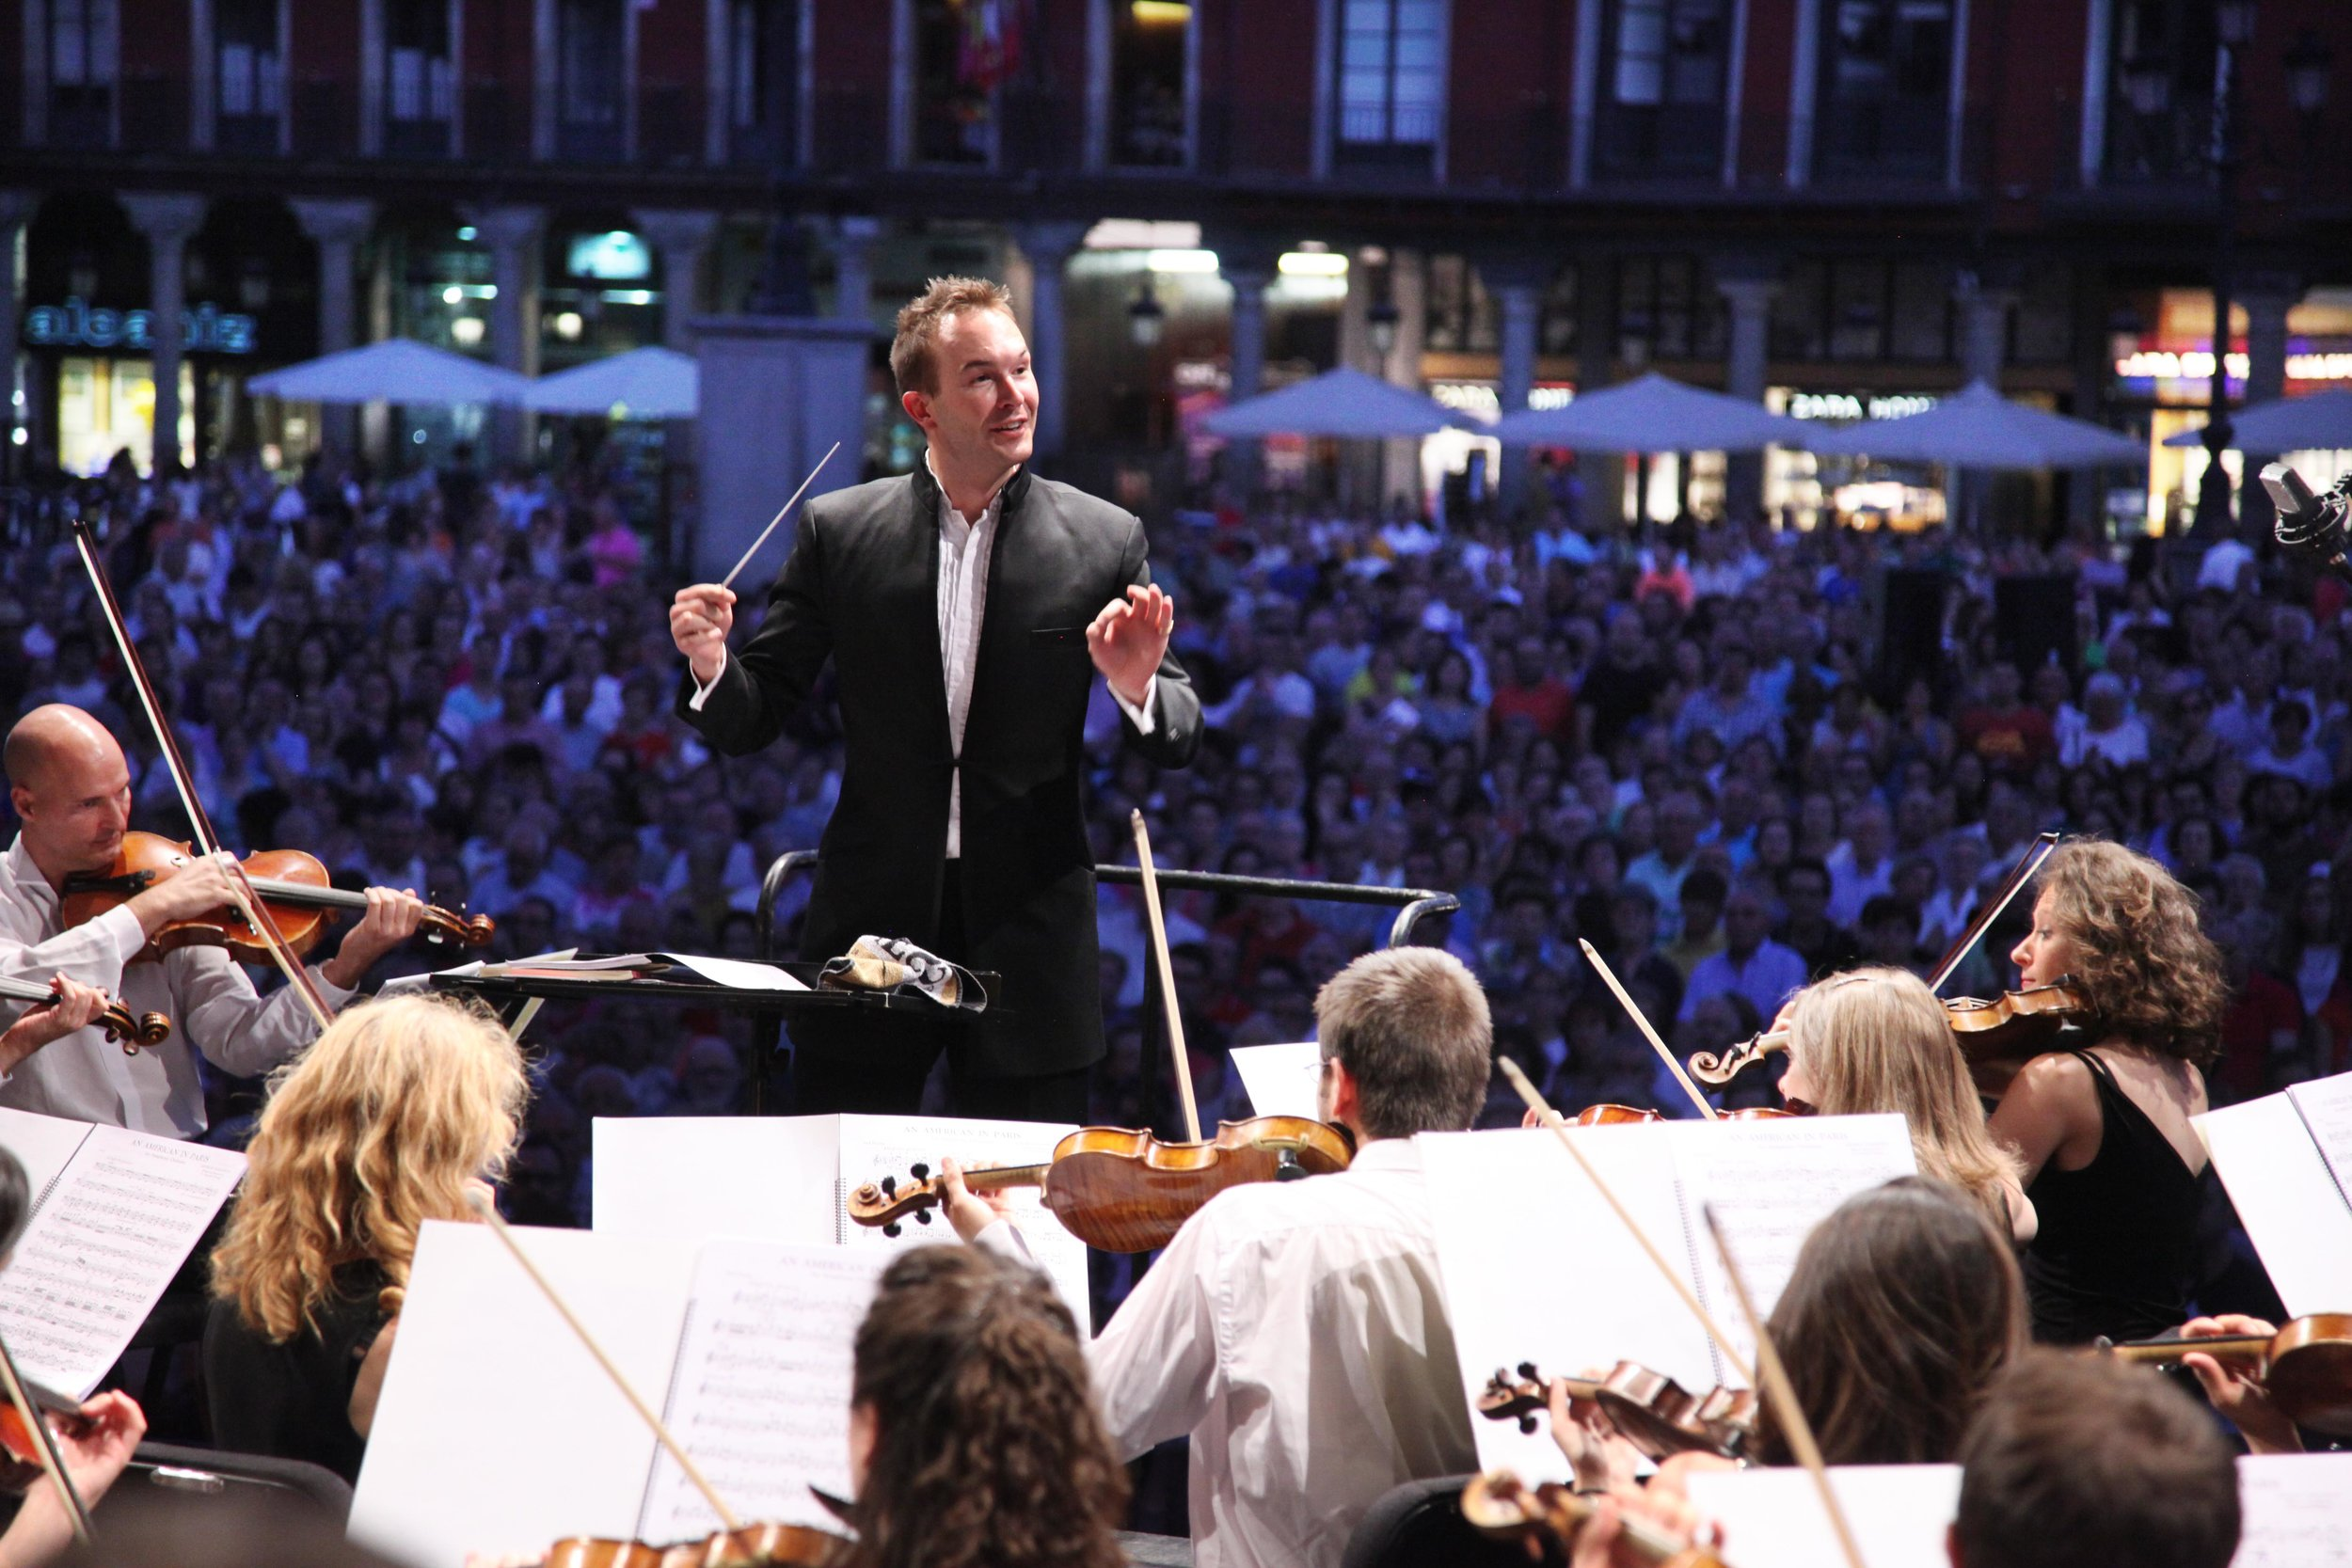 11/ Conducting the OSCYL in an open-air concert in Valladolid